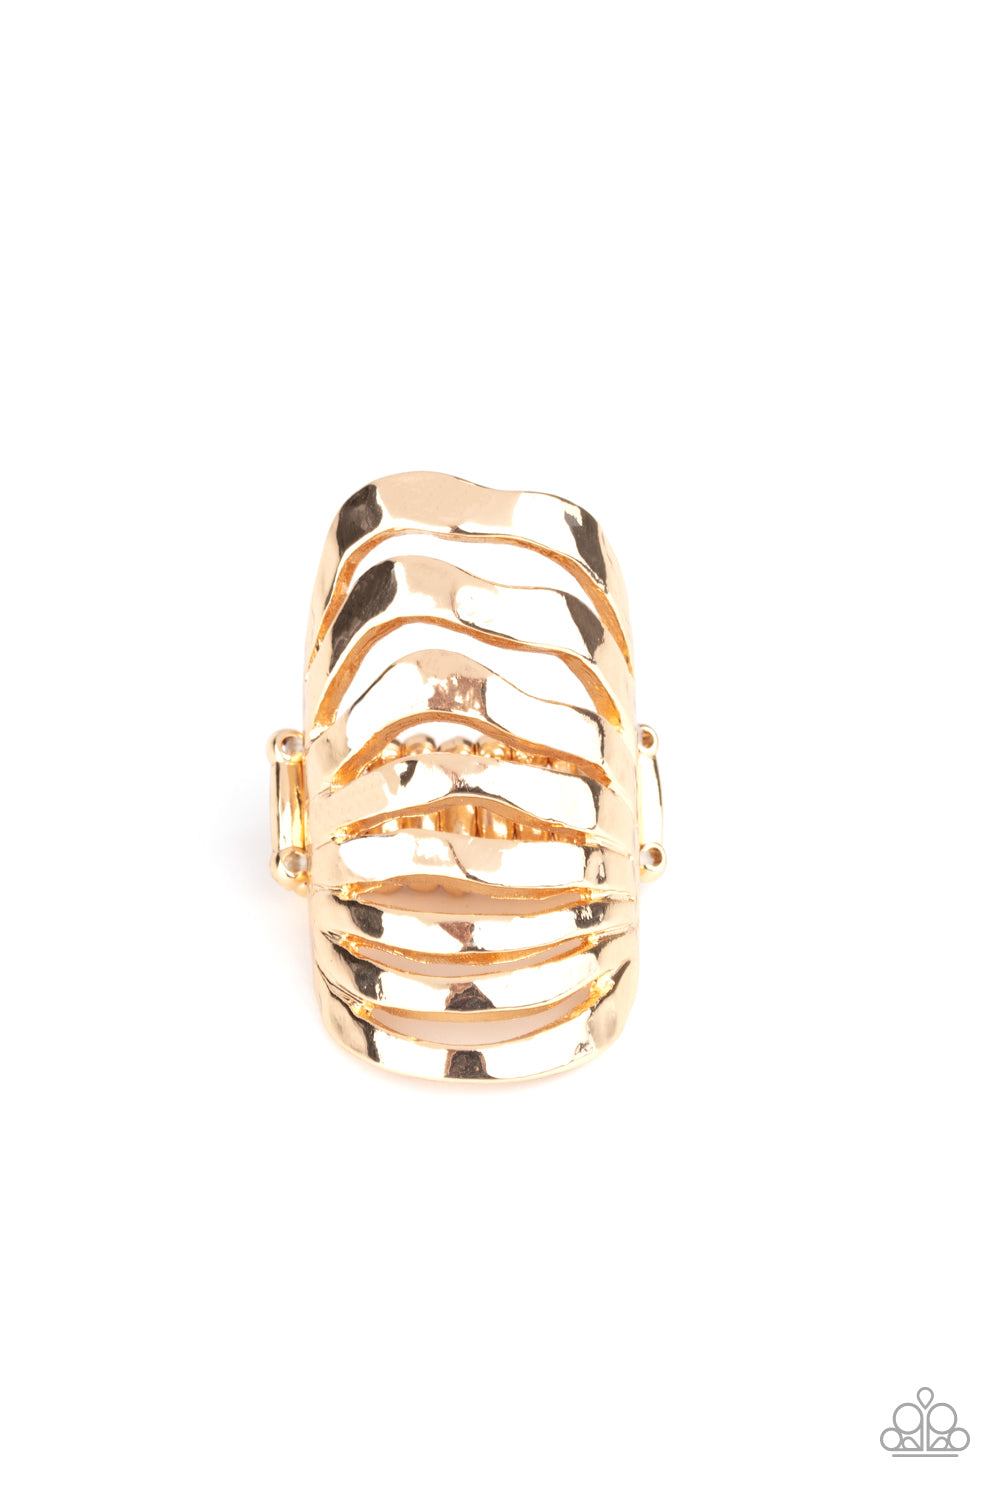 Sound Waves Gold Ring